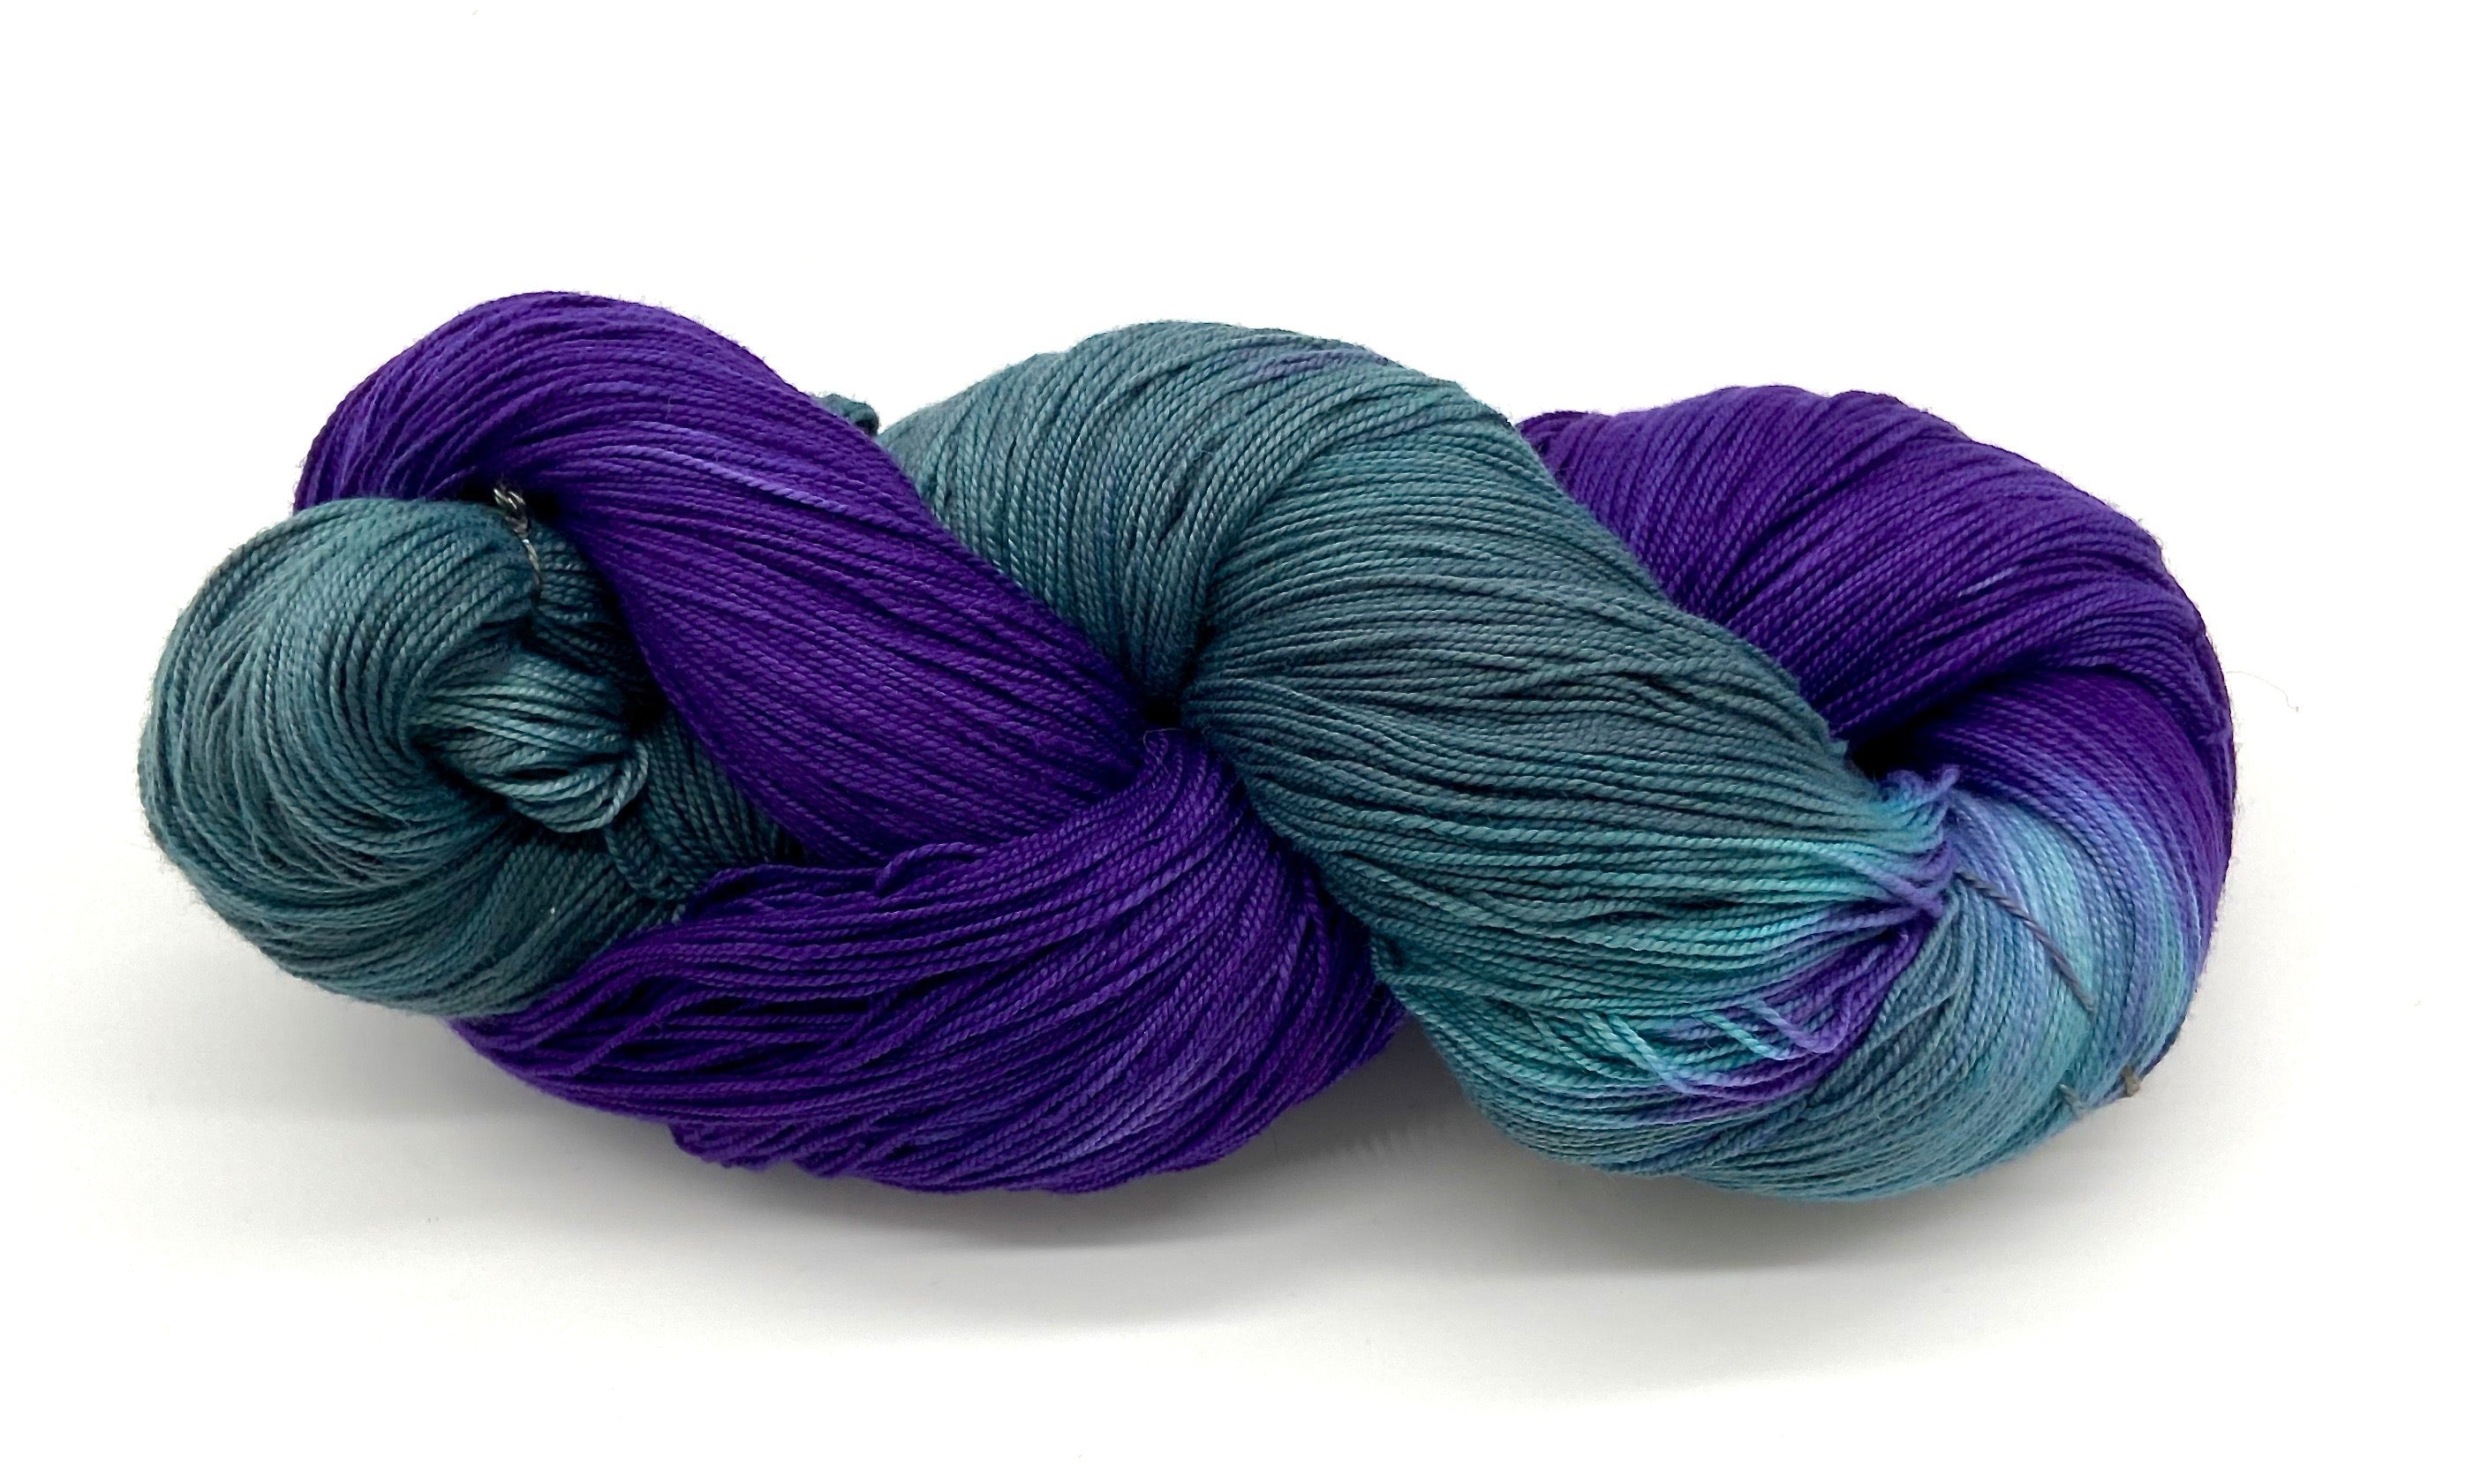 Semi Solid  Hand Dyed Cotton 8/2 - Sydney Sogol